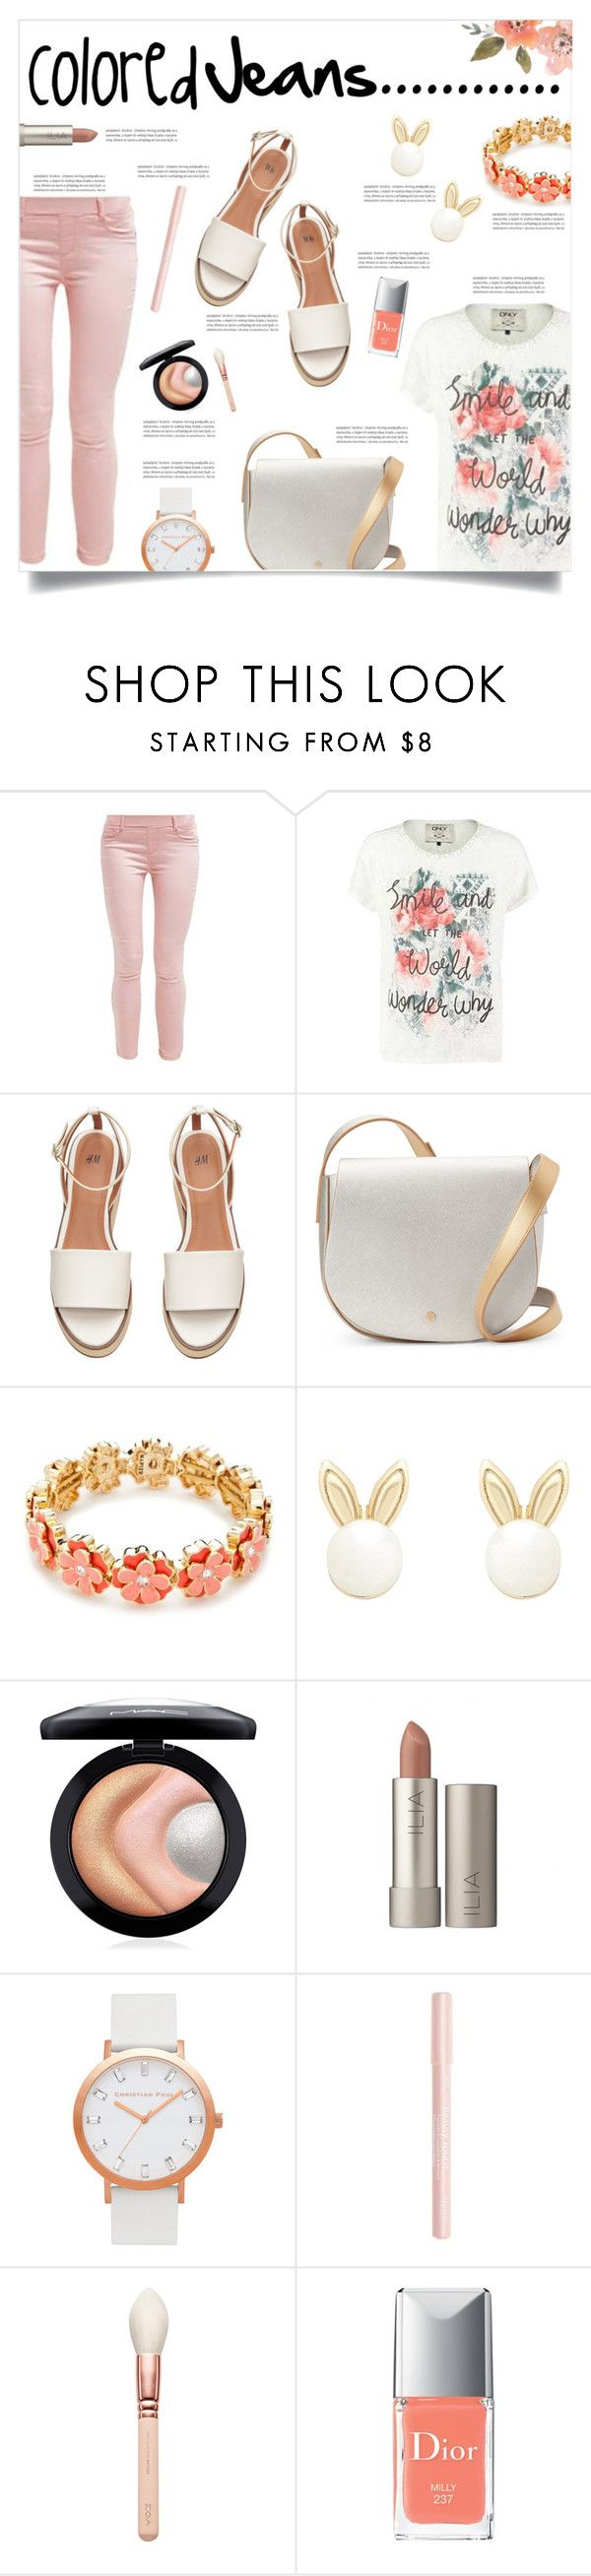 """Peach Jeans"" by simona-risi ❤ liked on Polyvore featuring Deux Lux, Napier, Lipsy, MAC Cosmetics, Oris, Bourjois and Christian Dior"